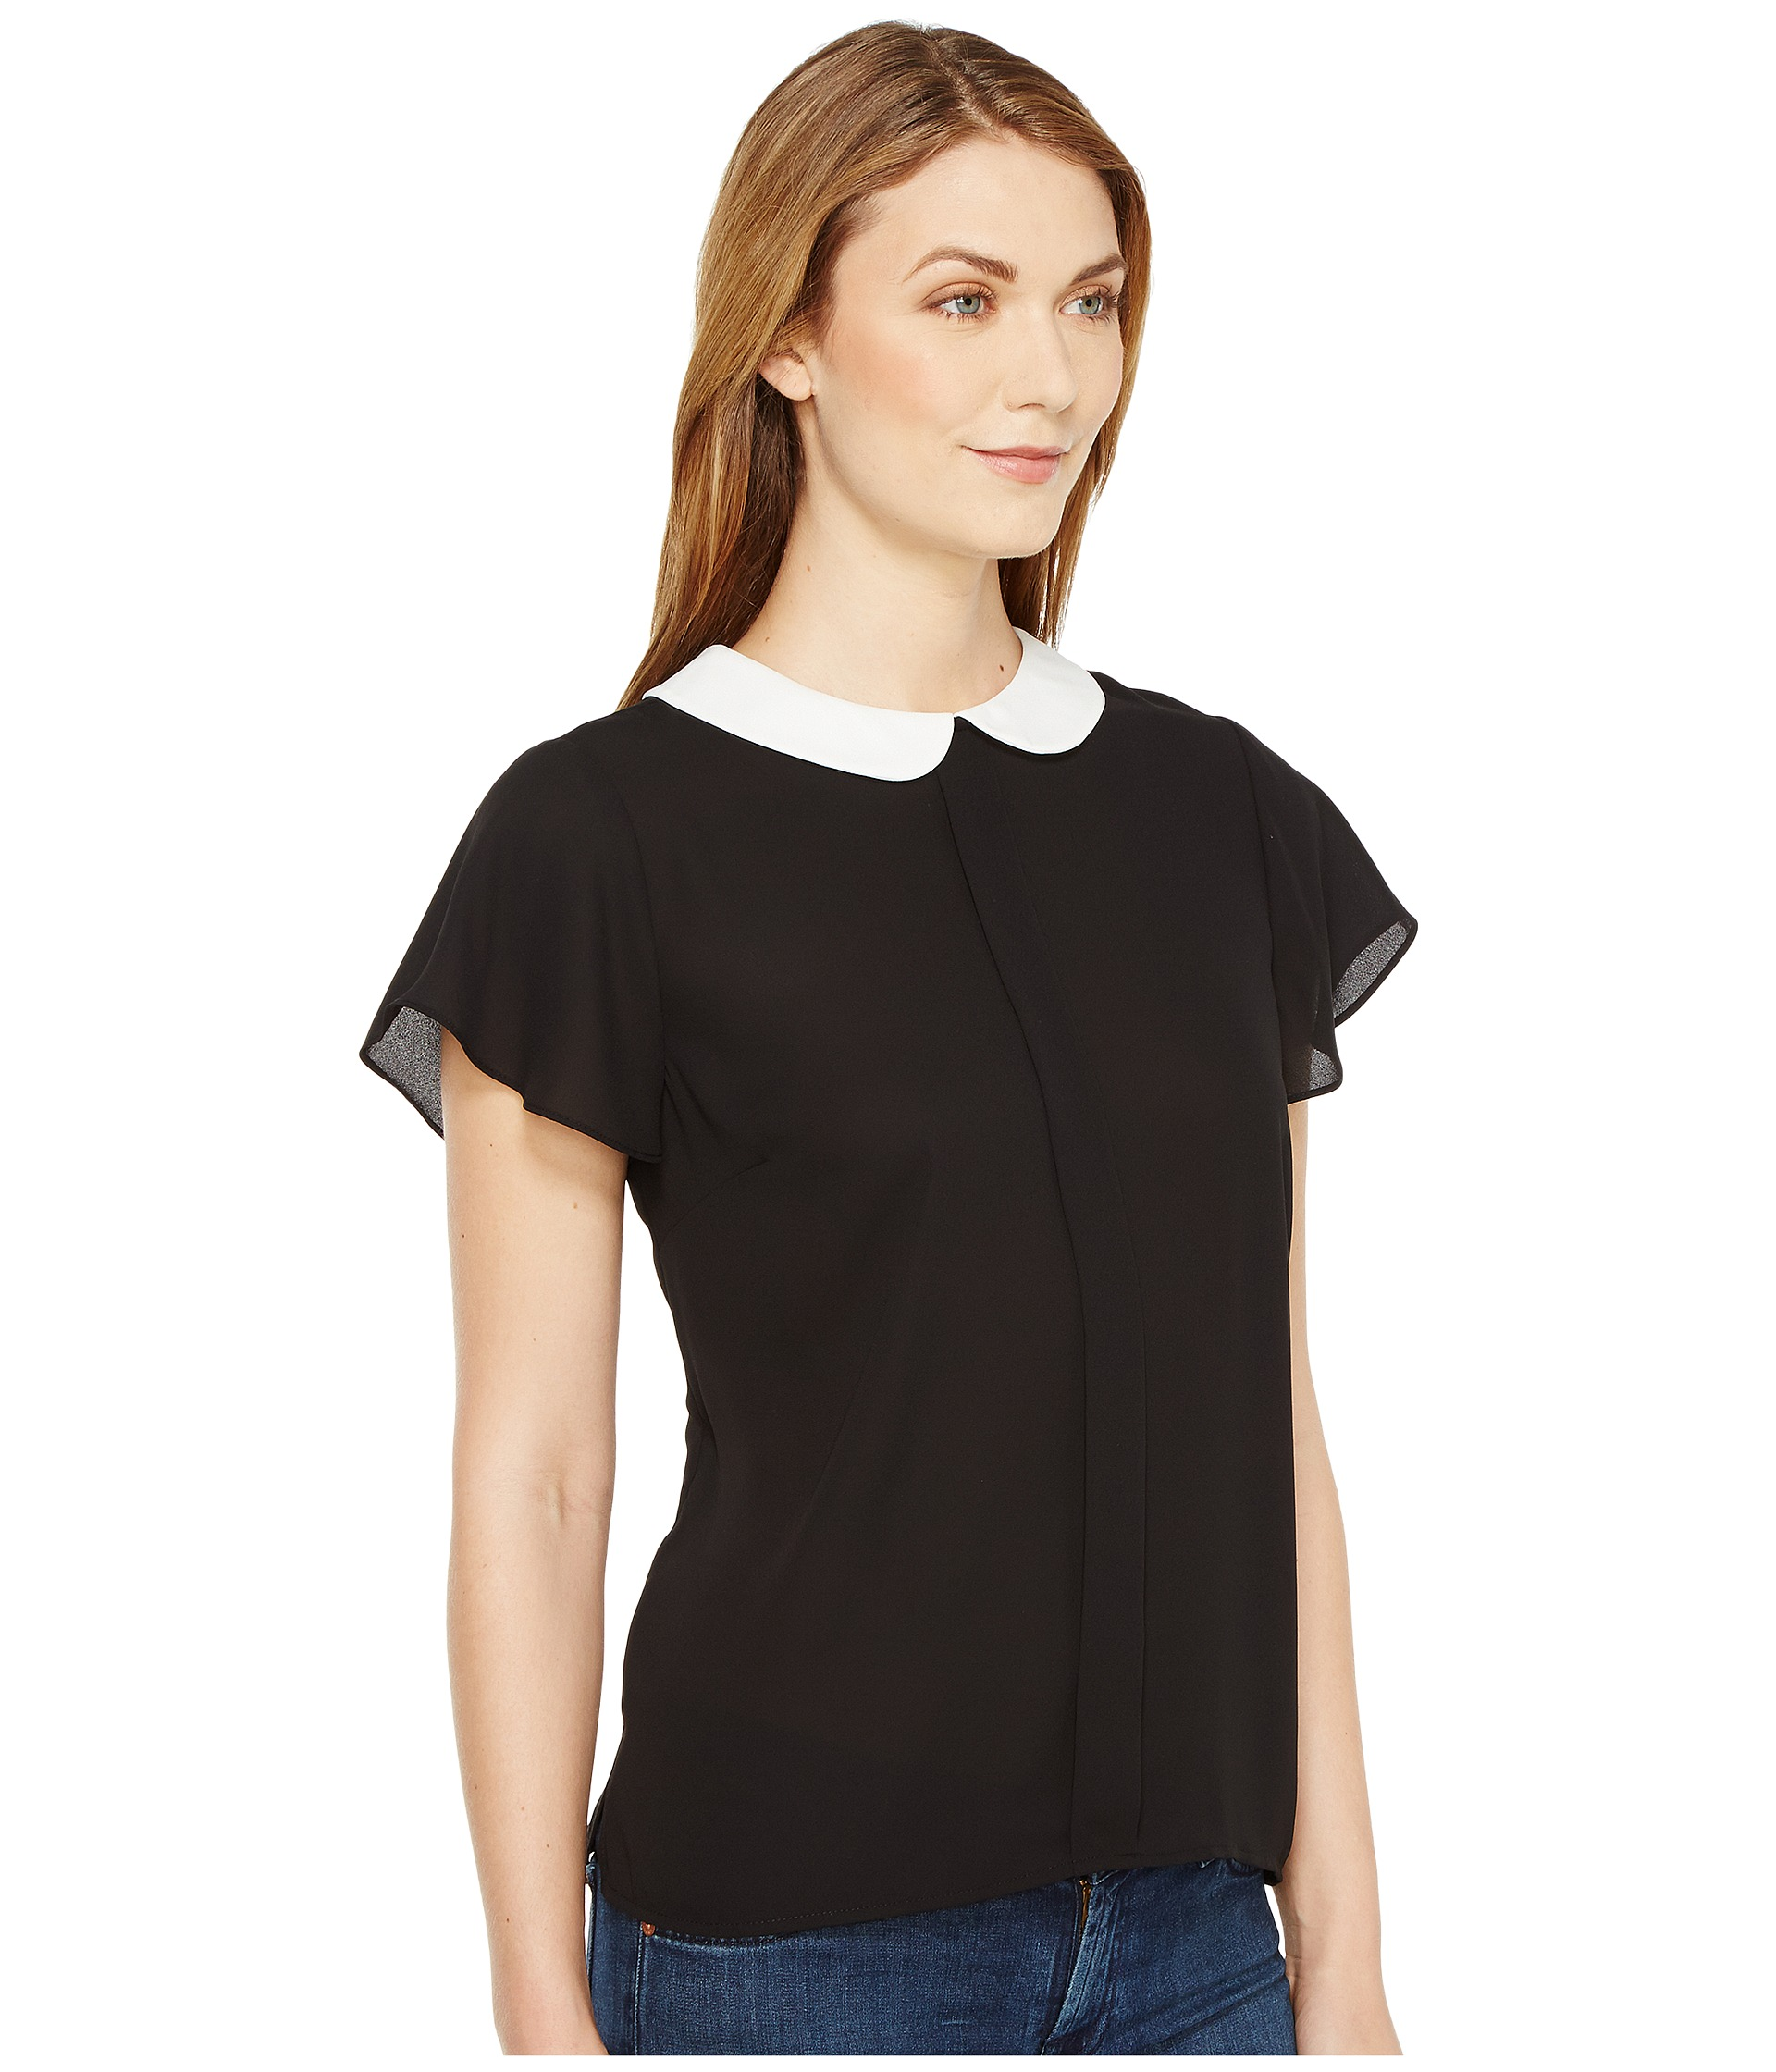 Stylish Women's Short-Sleeved T-Shirts and Tops Maximise your style choices with our range of beautiful short-sleeved women's tops. Whether you are looking for simple separates for the office of structured tops and graphic prints, we have options for all occasions.